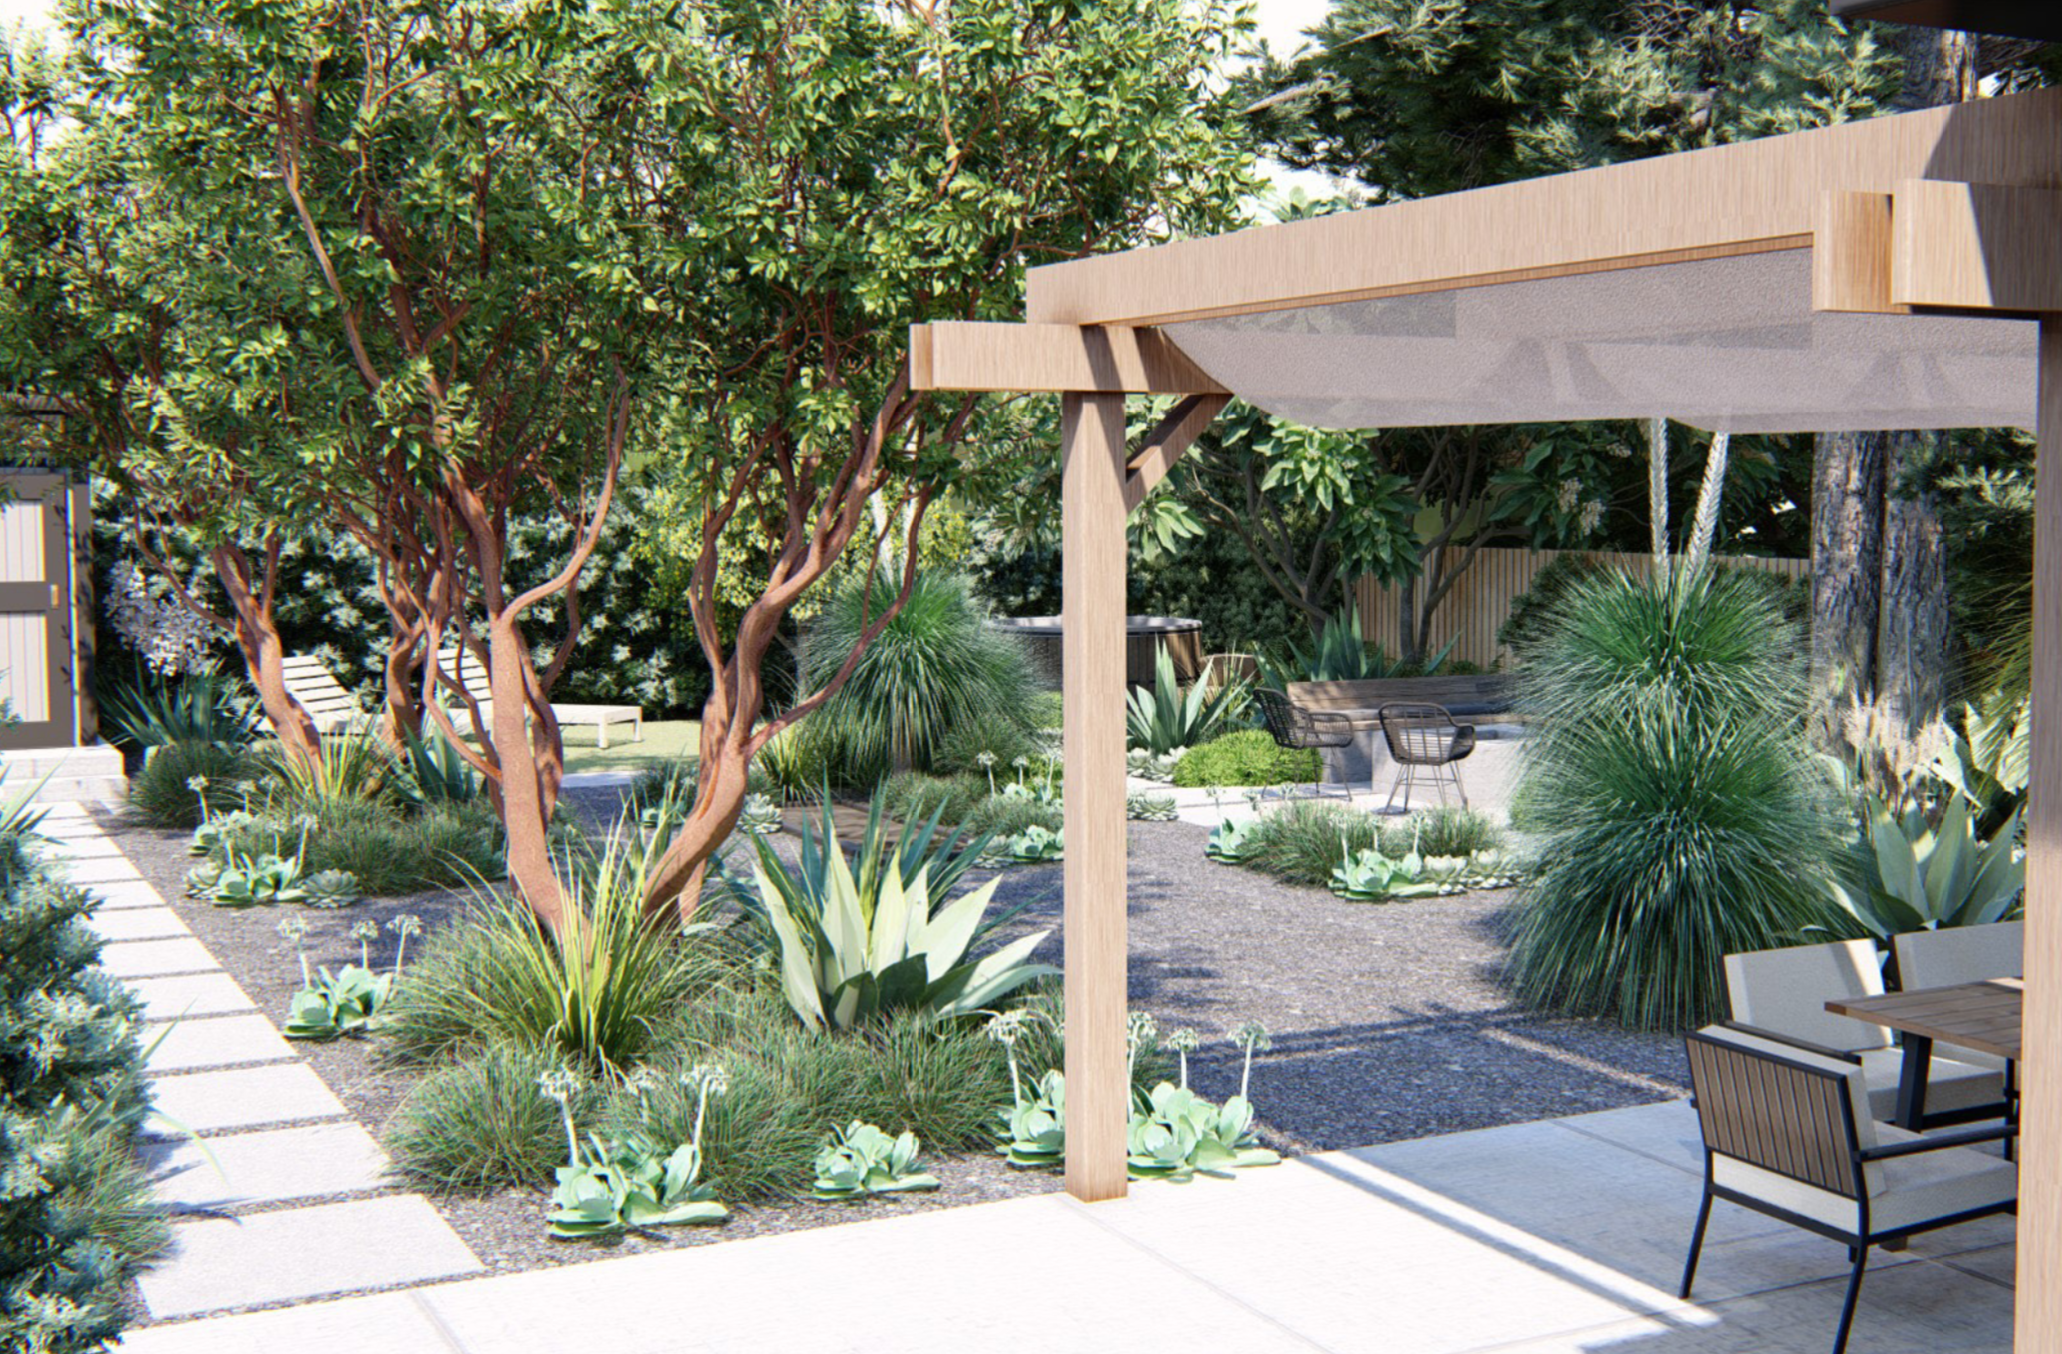 A digital view of Saletnik and Vesely's new backyard design with a refurbished concrete patio and shade structure. New plantings are lush while still being low maintenance and waterwise.